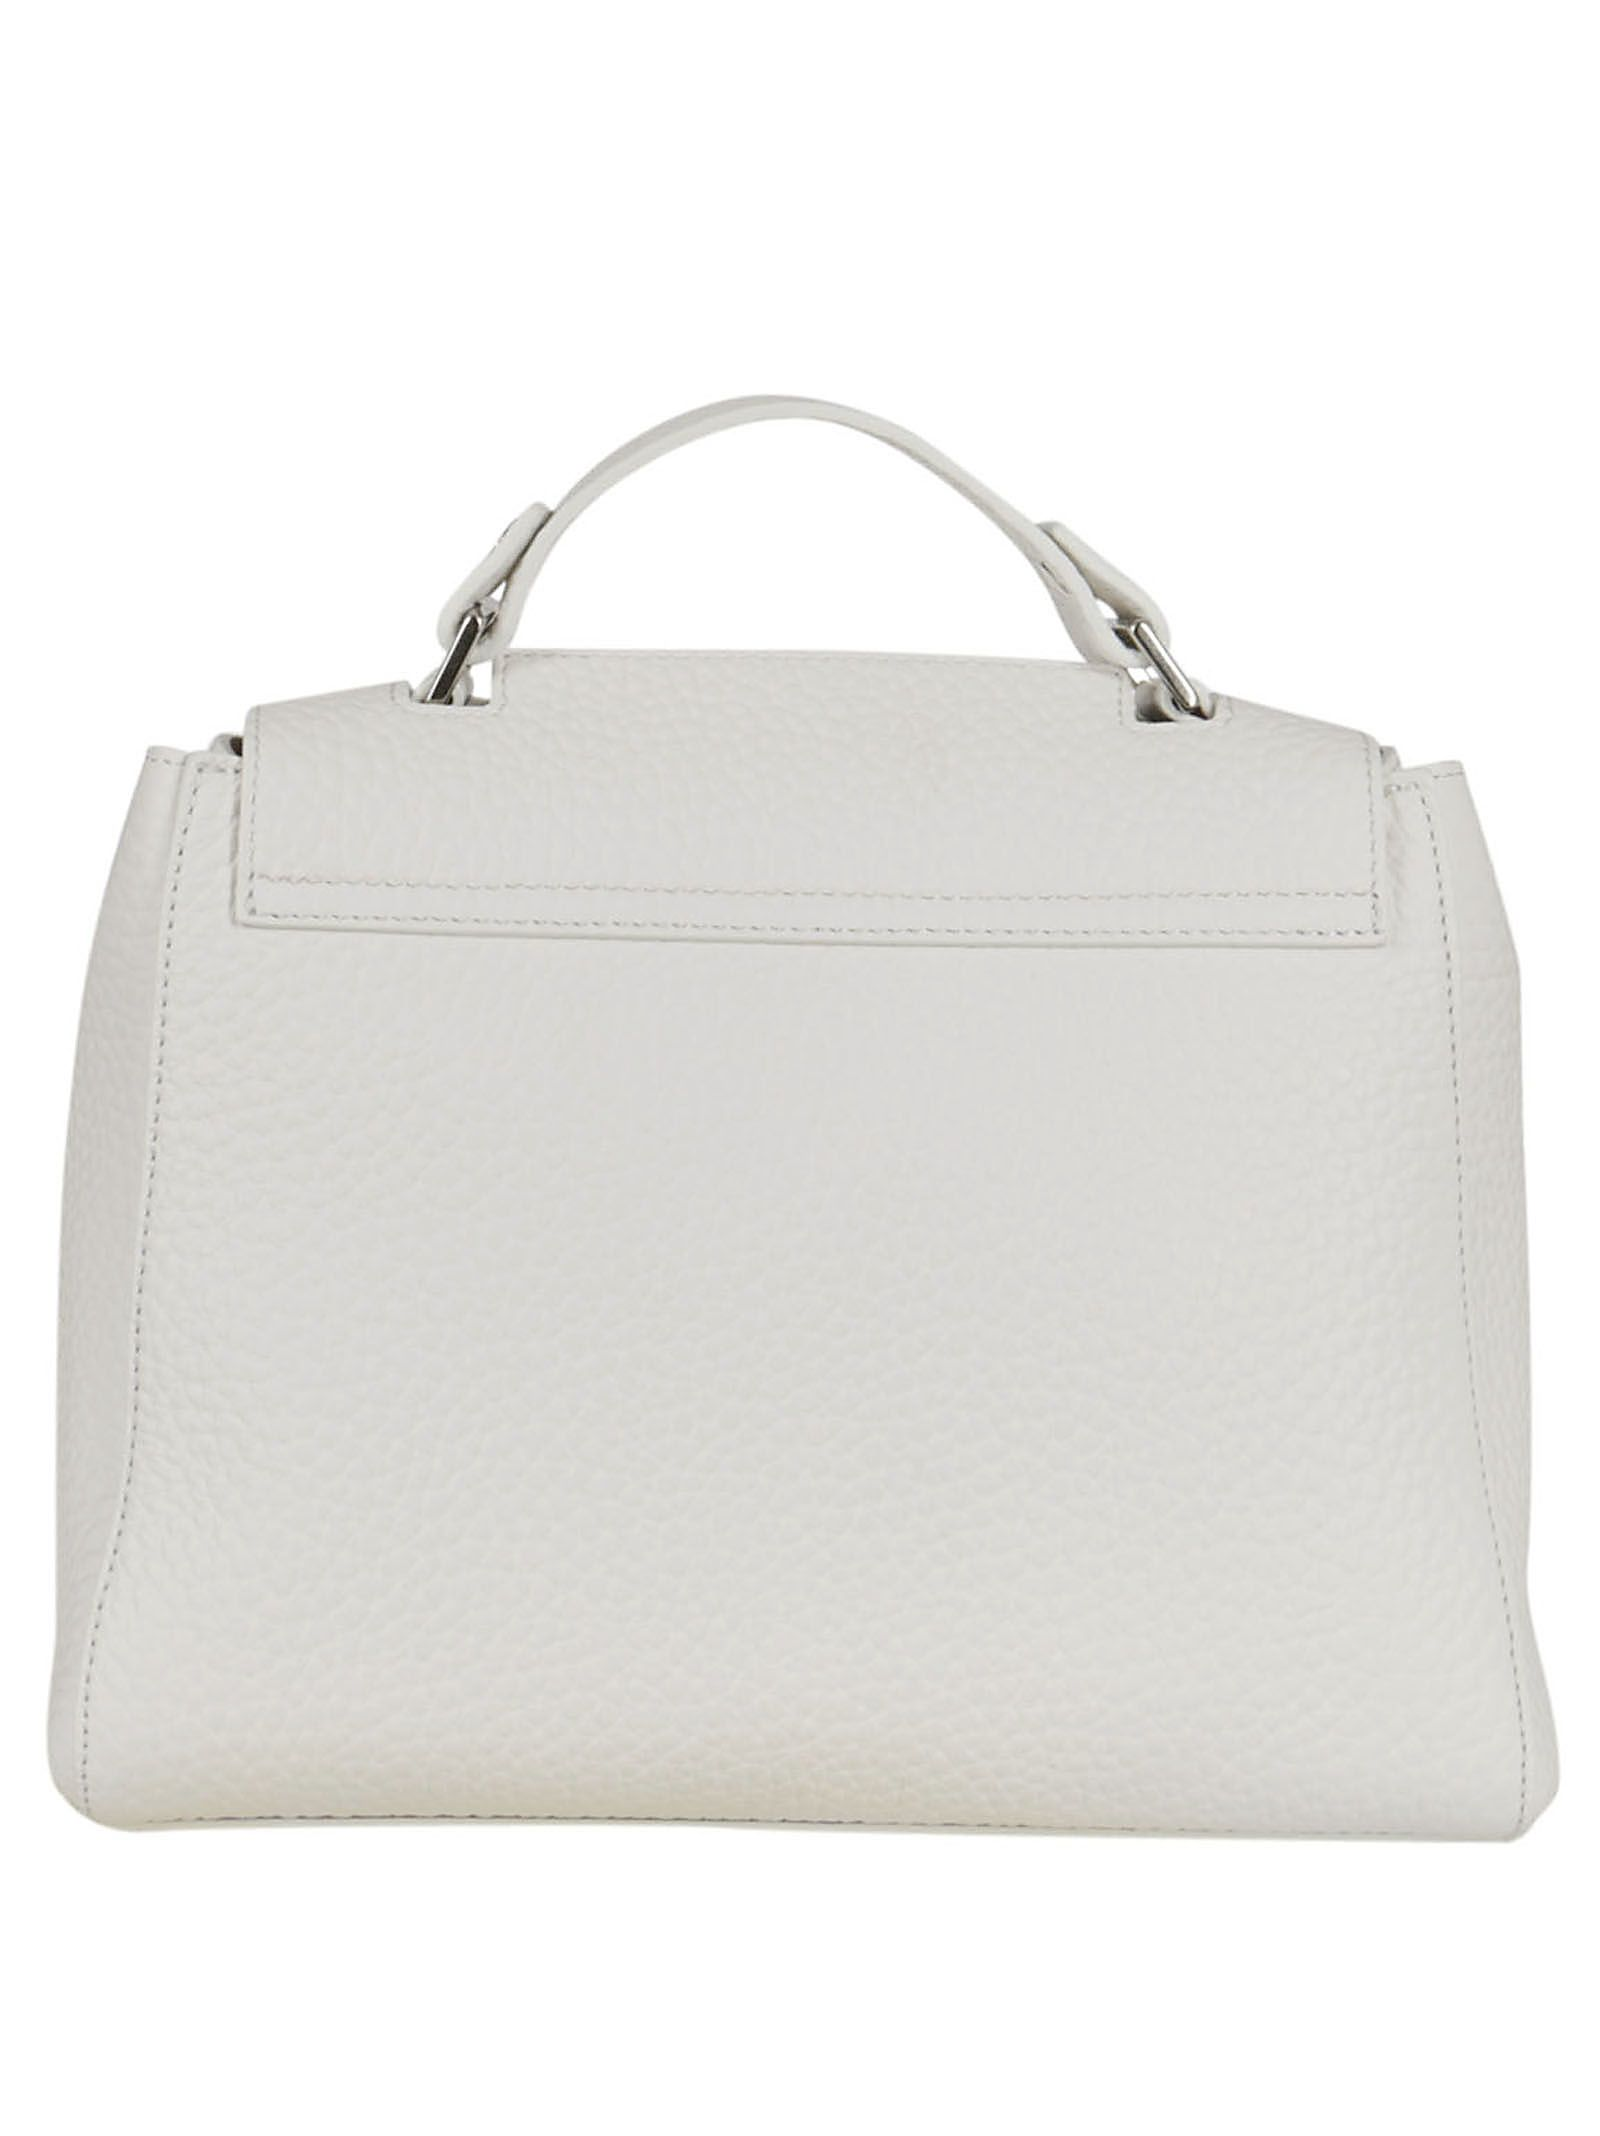 Shoulder Bag for Women On Sale, White, Leather, 2017, one size Orciani